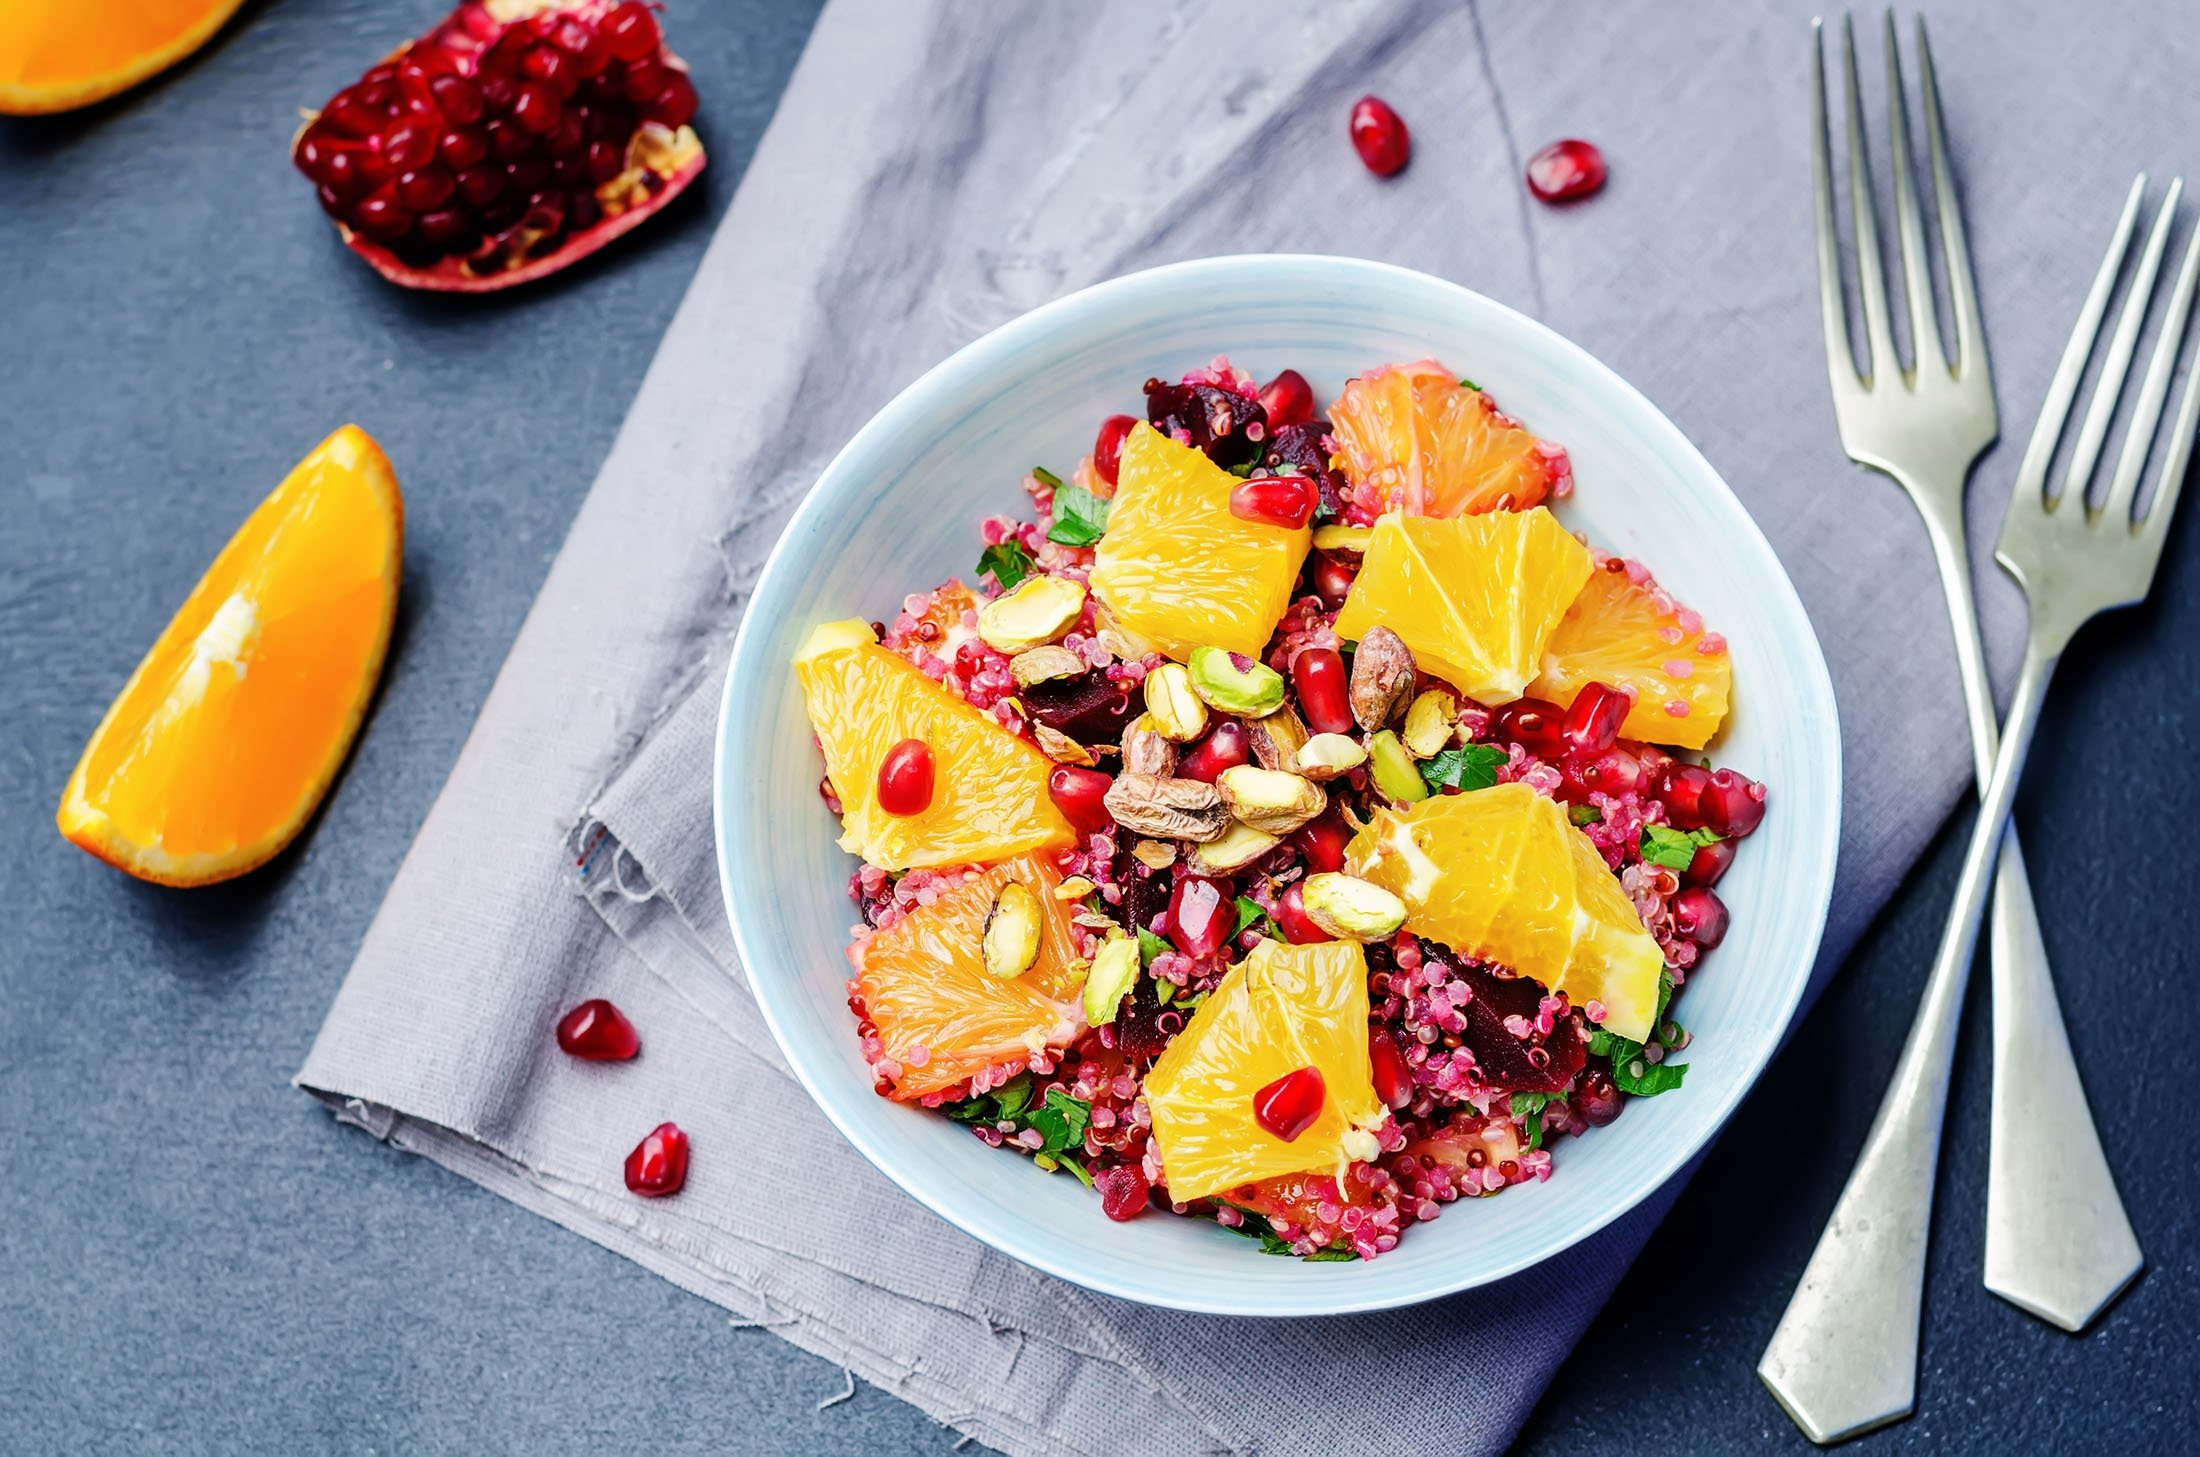 You could always skip the oats and only go for quinoa in your fruity grain salad. (Shutterstock Photo)